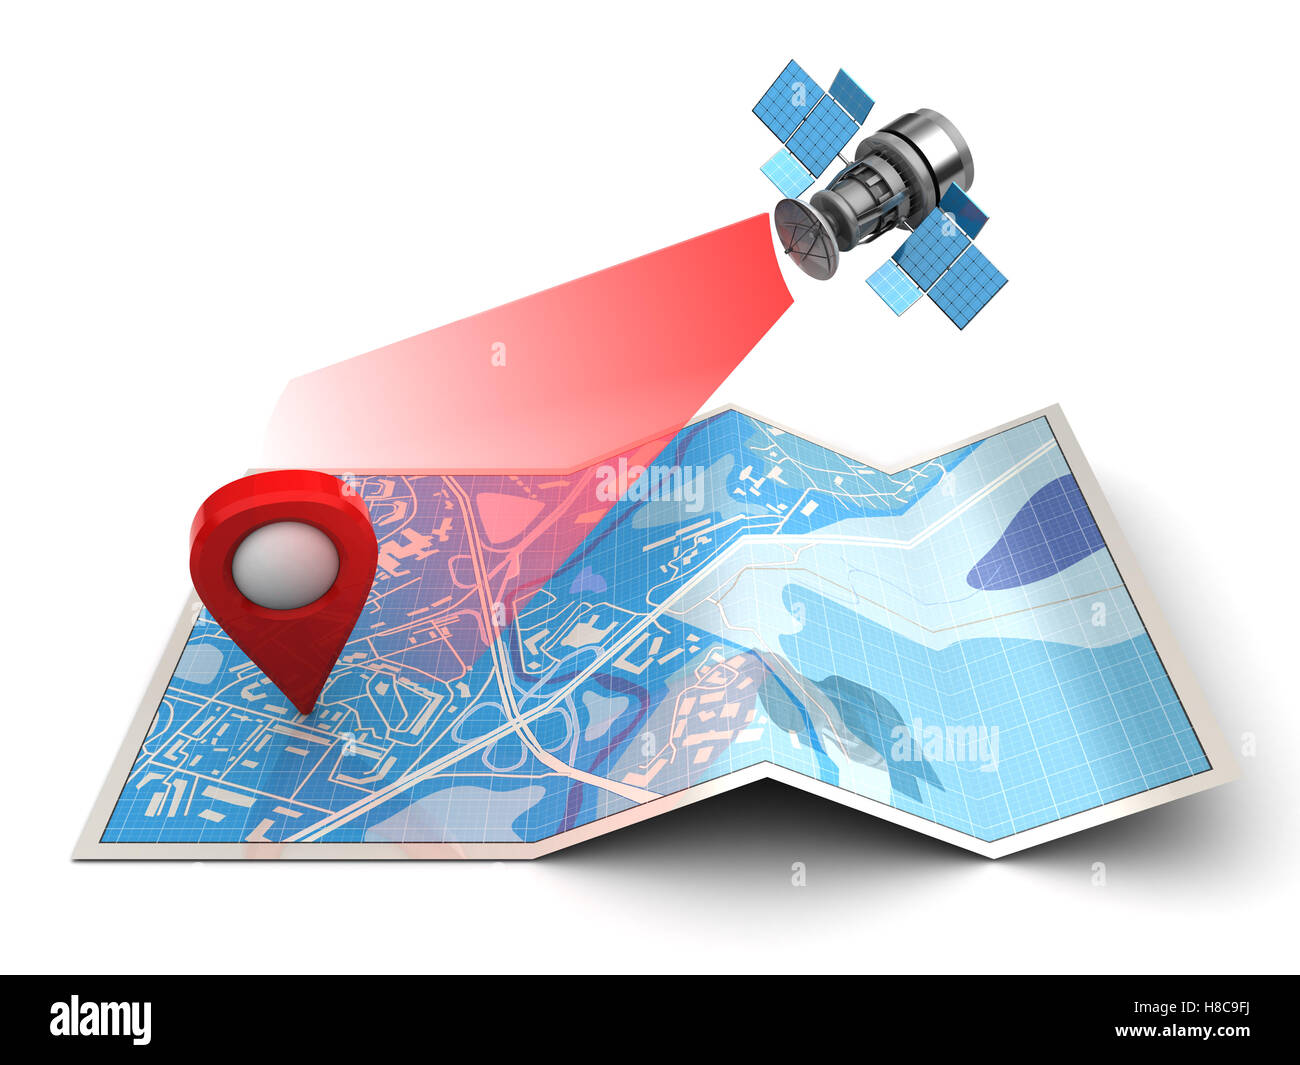 3d illustration of map and satellite - gps navigation conept - Stock Image